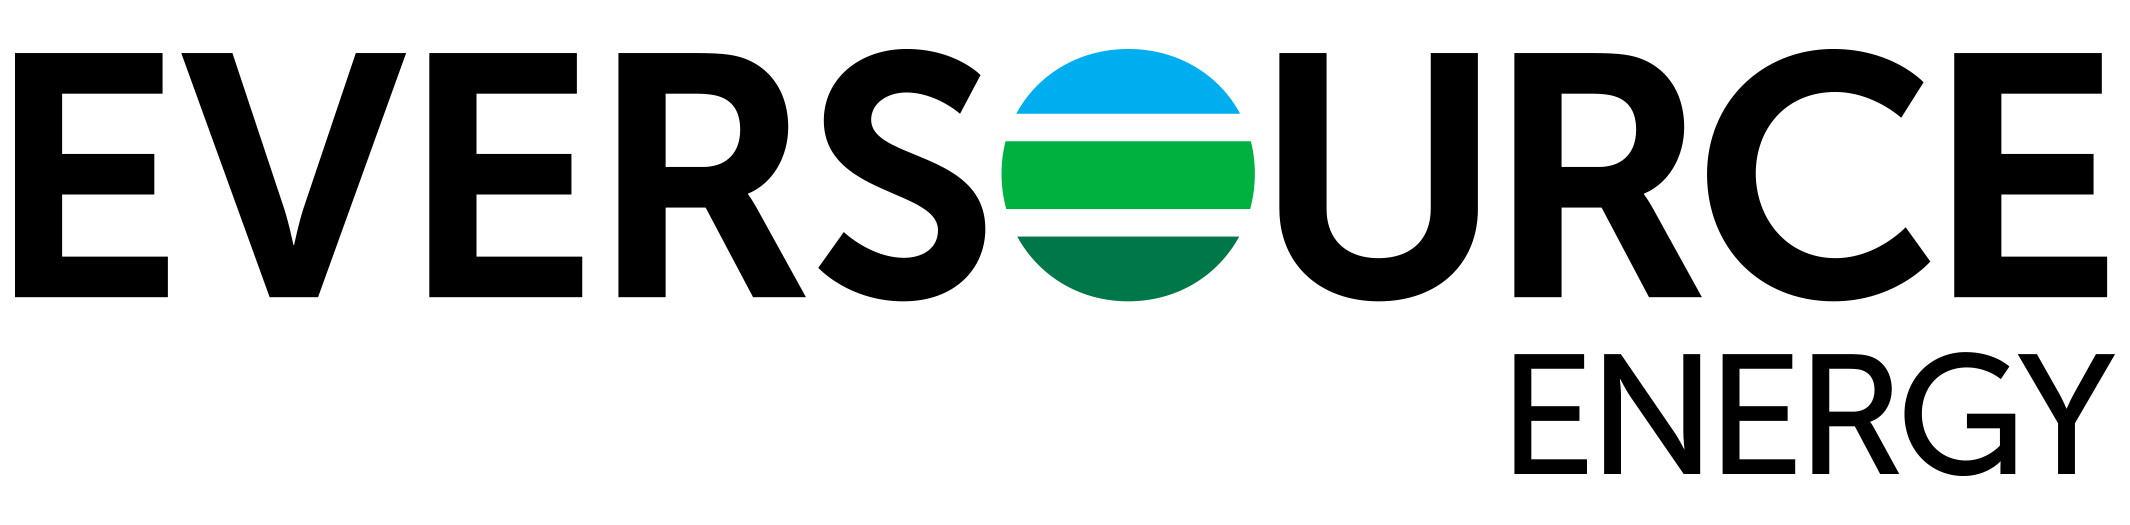 Eversource Energy Color logo.jpg